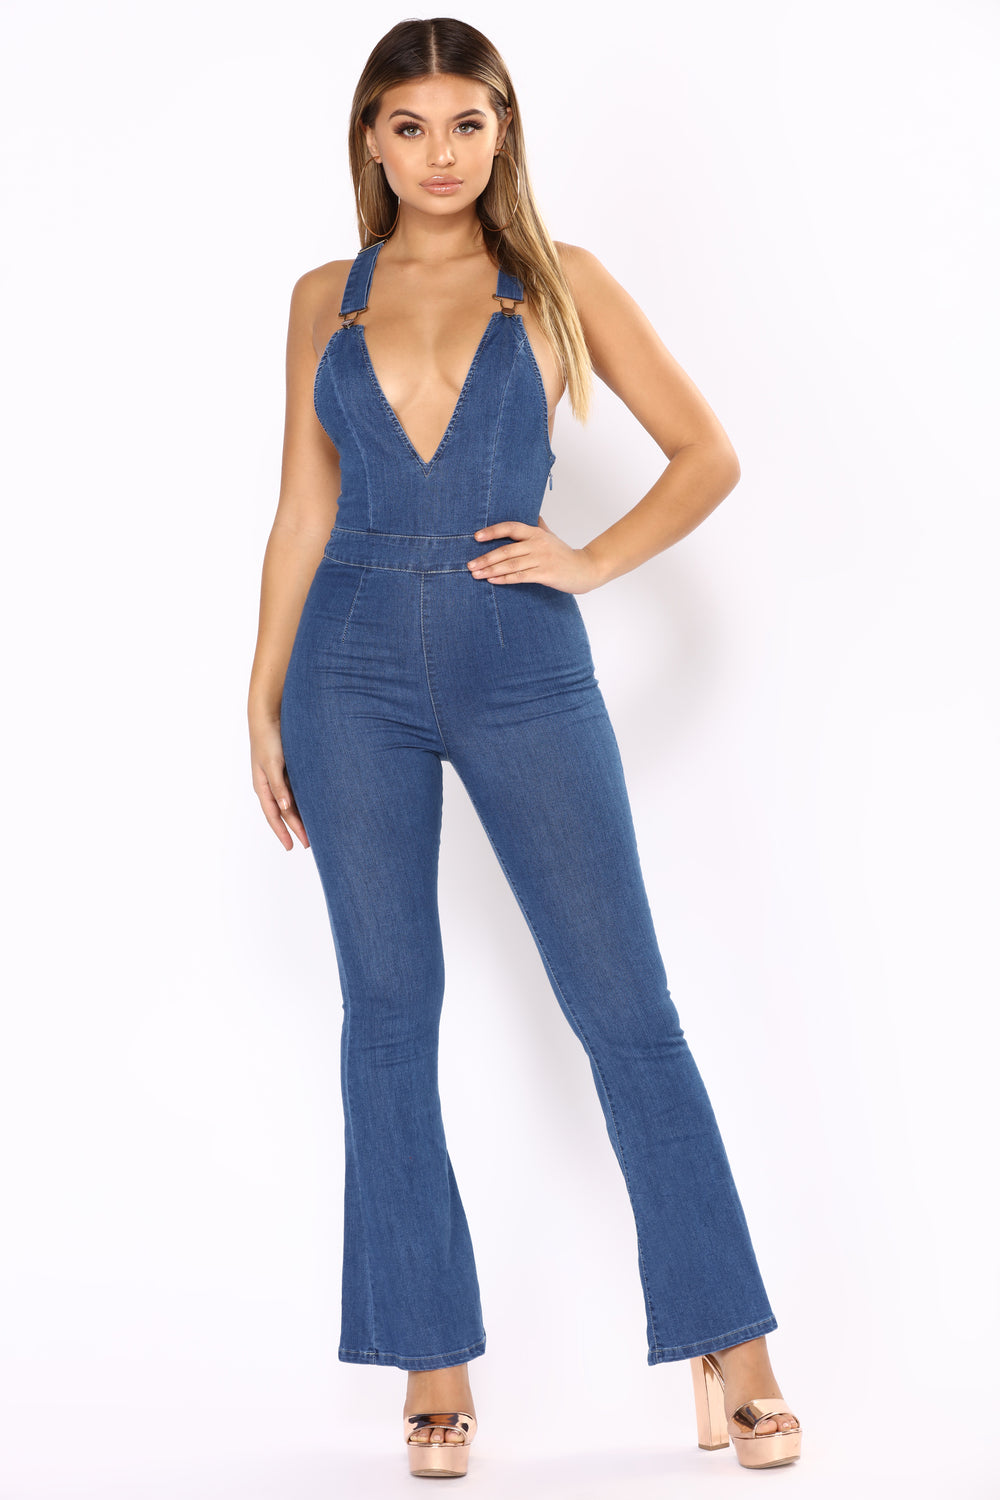 Love A Flare Jumpsuit - Dark